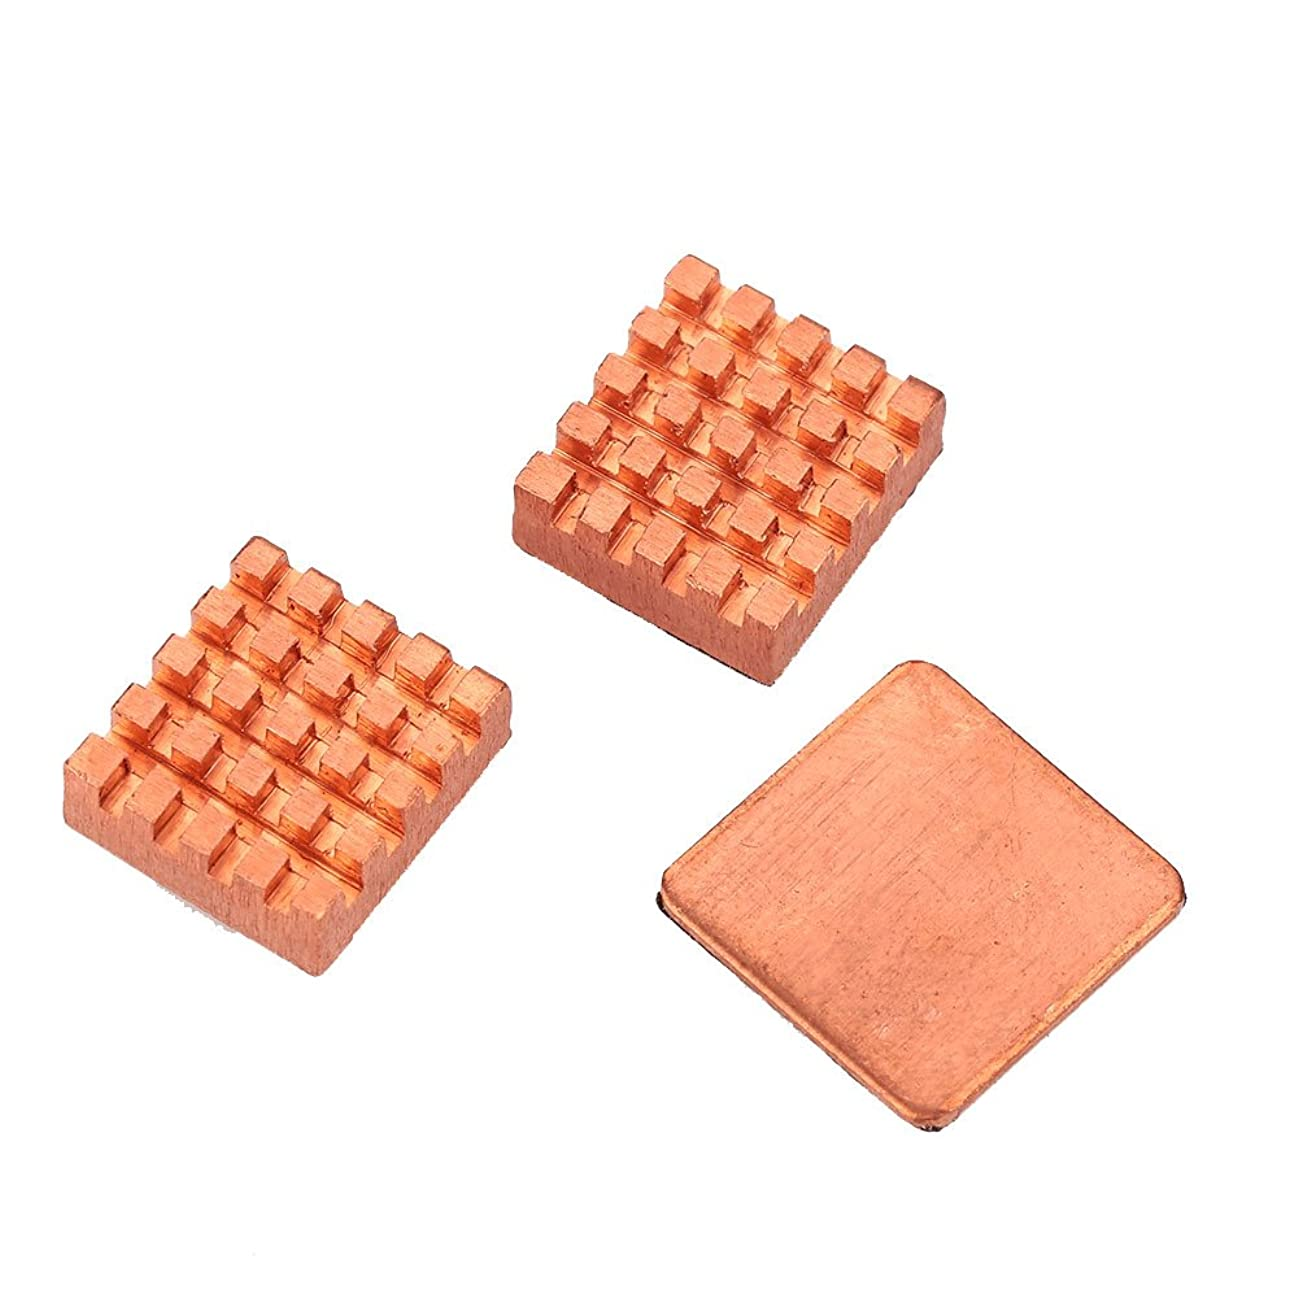 Shenlian 3 Pcs Copper Heatsink with Thermal Conductive Adhesive Tape Ready-to-Use New 3Pcs Pure Copper Slice Heat Sinks Cooler Kit for Raspberry